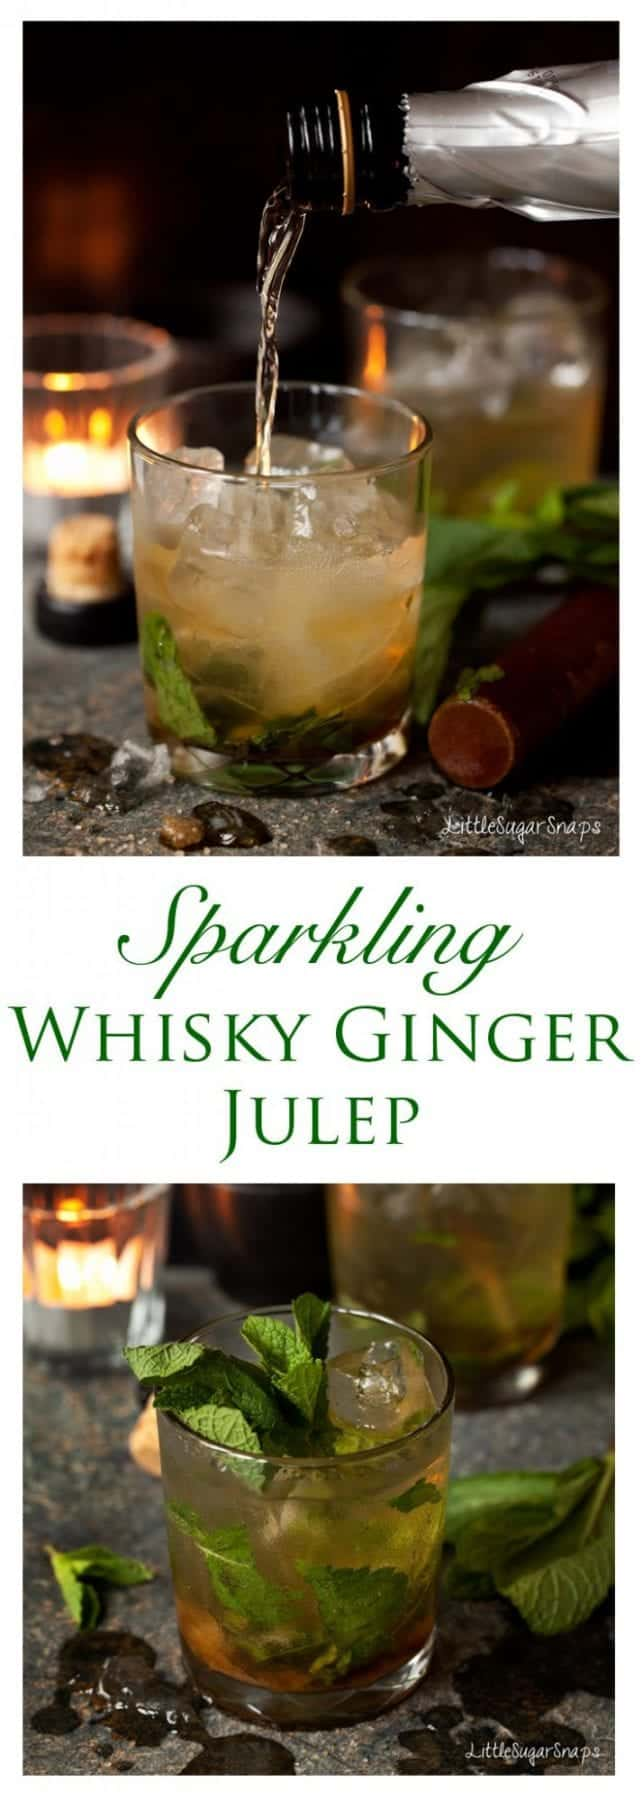 The Whisky Ginger Julep is a fascinating blend of whisky, ginger liqueur, mint and Prosecco. A cunning spin off from the classic Julep. Give your taste buds something to natter about.